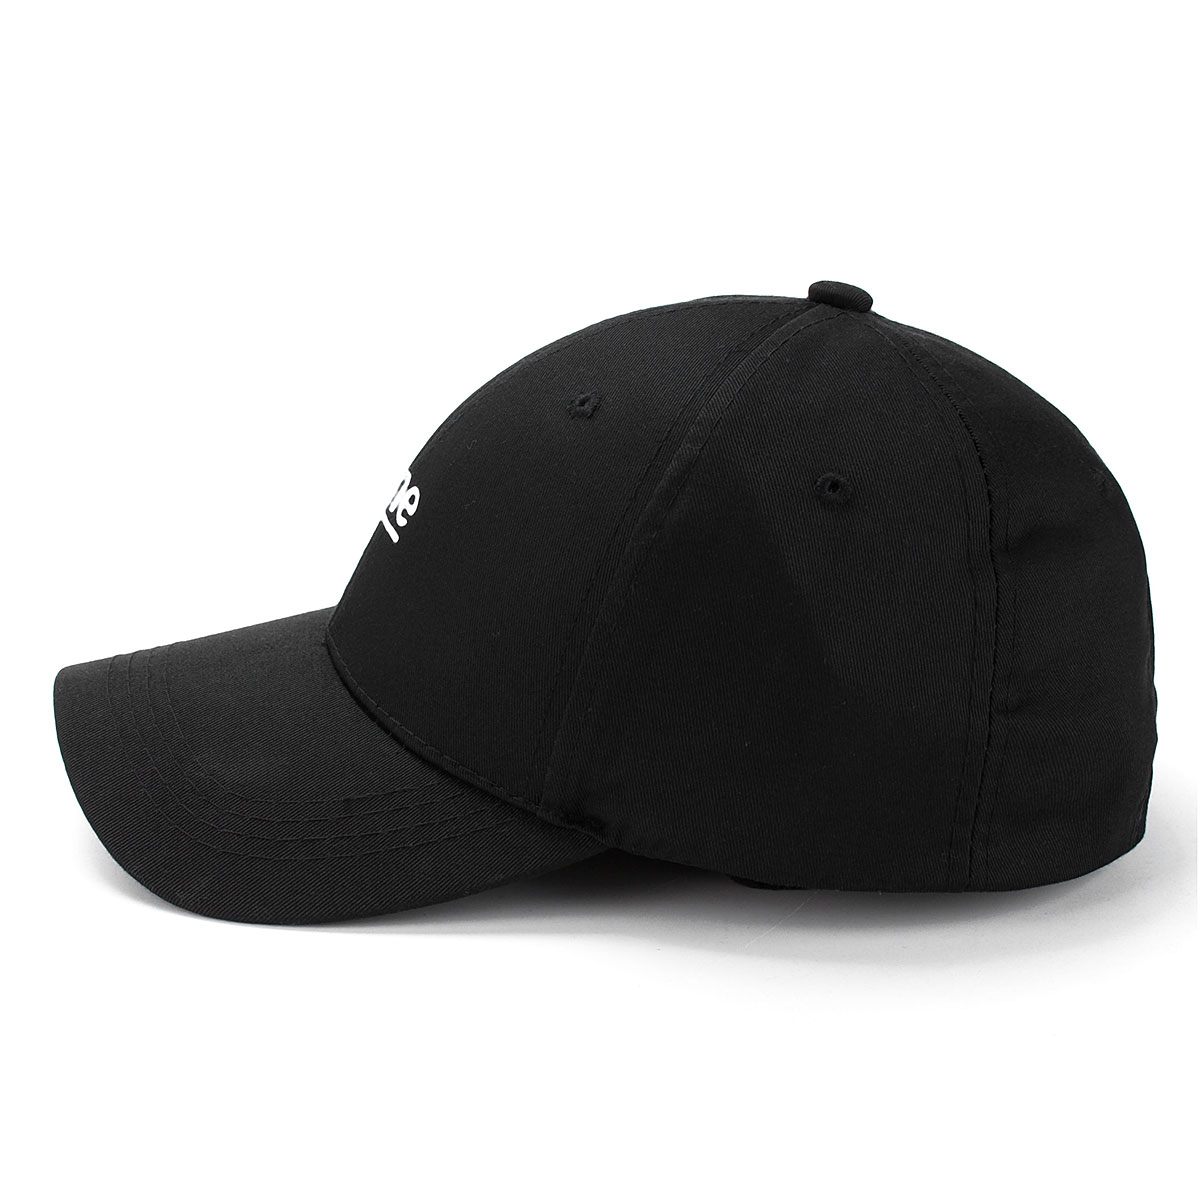 Letter Black Hat Hip-hop Kpop Curved Strap Back Baseball Cap Adjustable for Women Men